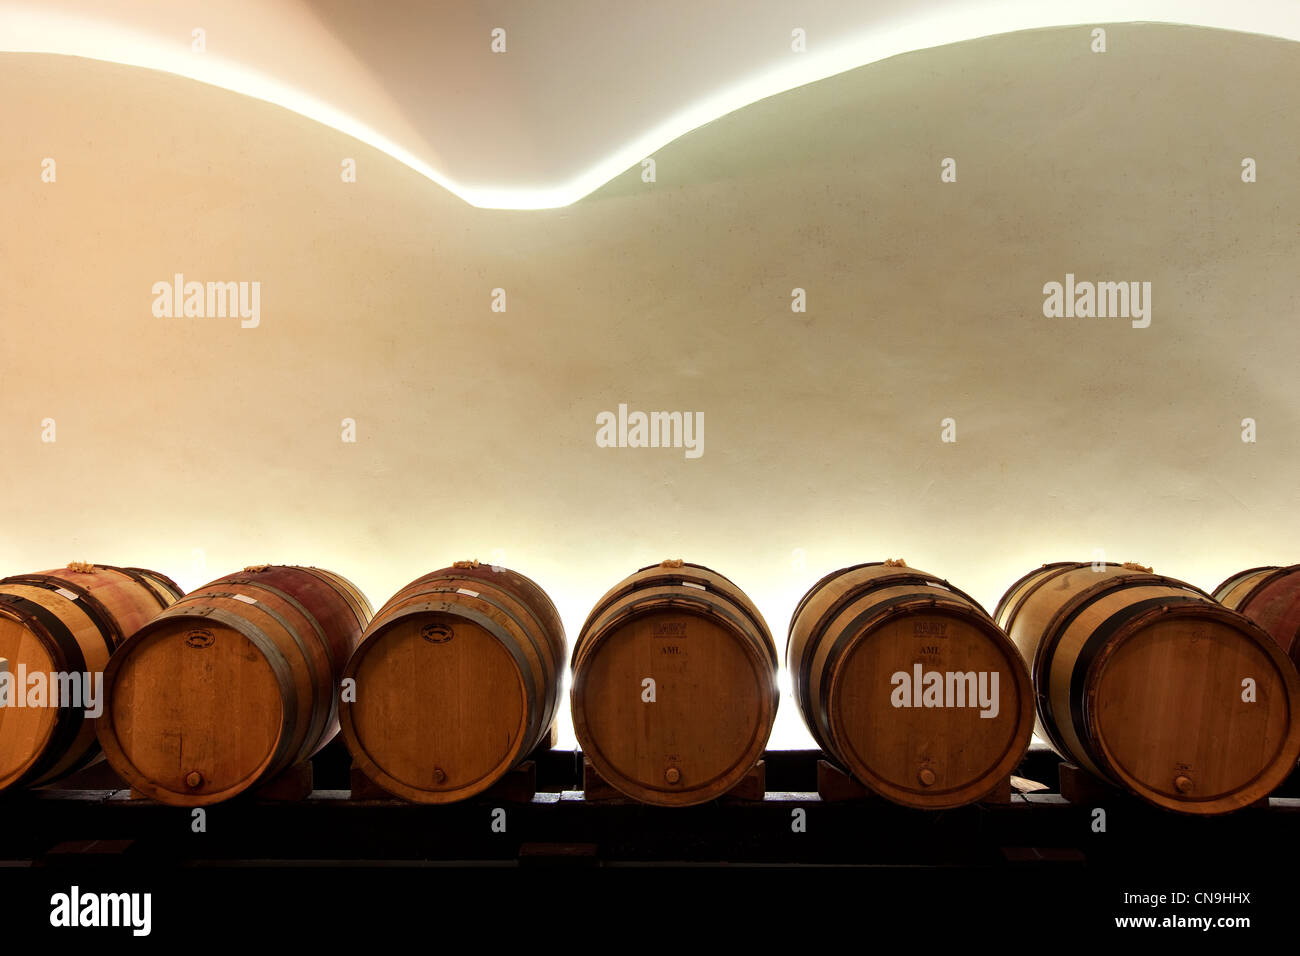 France, Vaucluse, Luberon, Lourmarin, Maison Tardieu Laurent, The Big Country houses, wine-tasting cellar - Stock Image